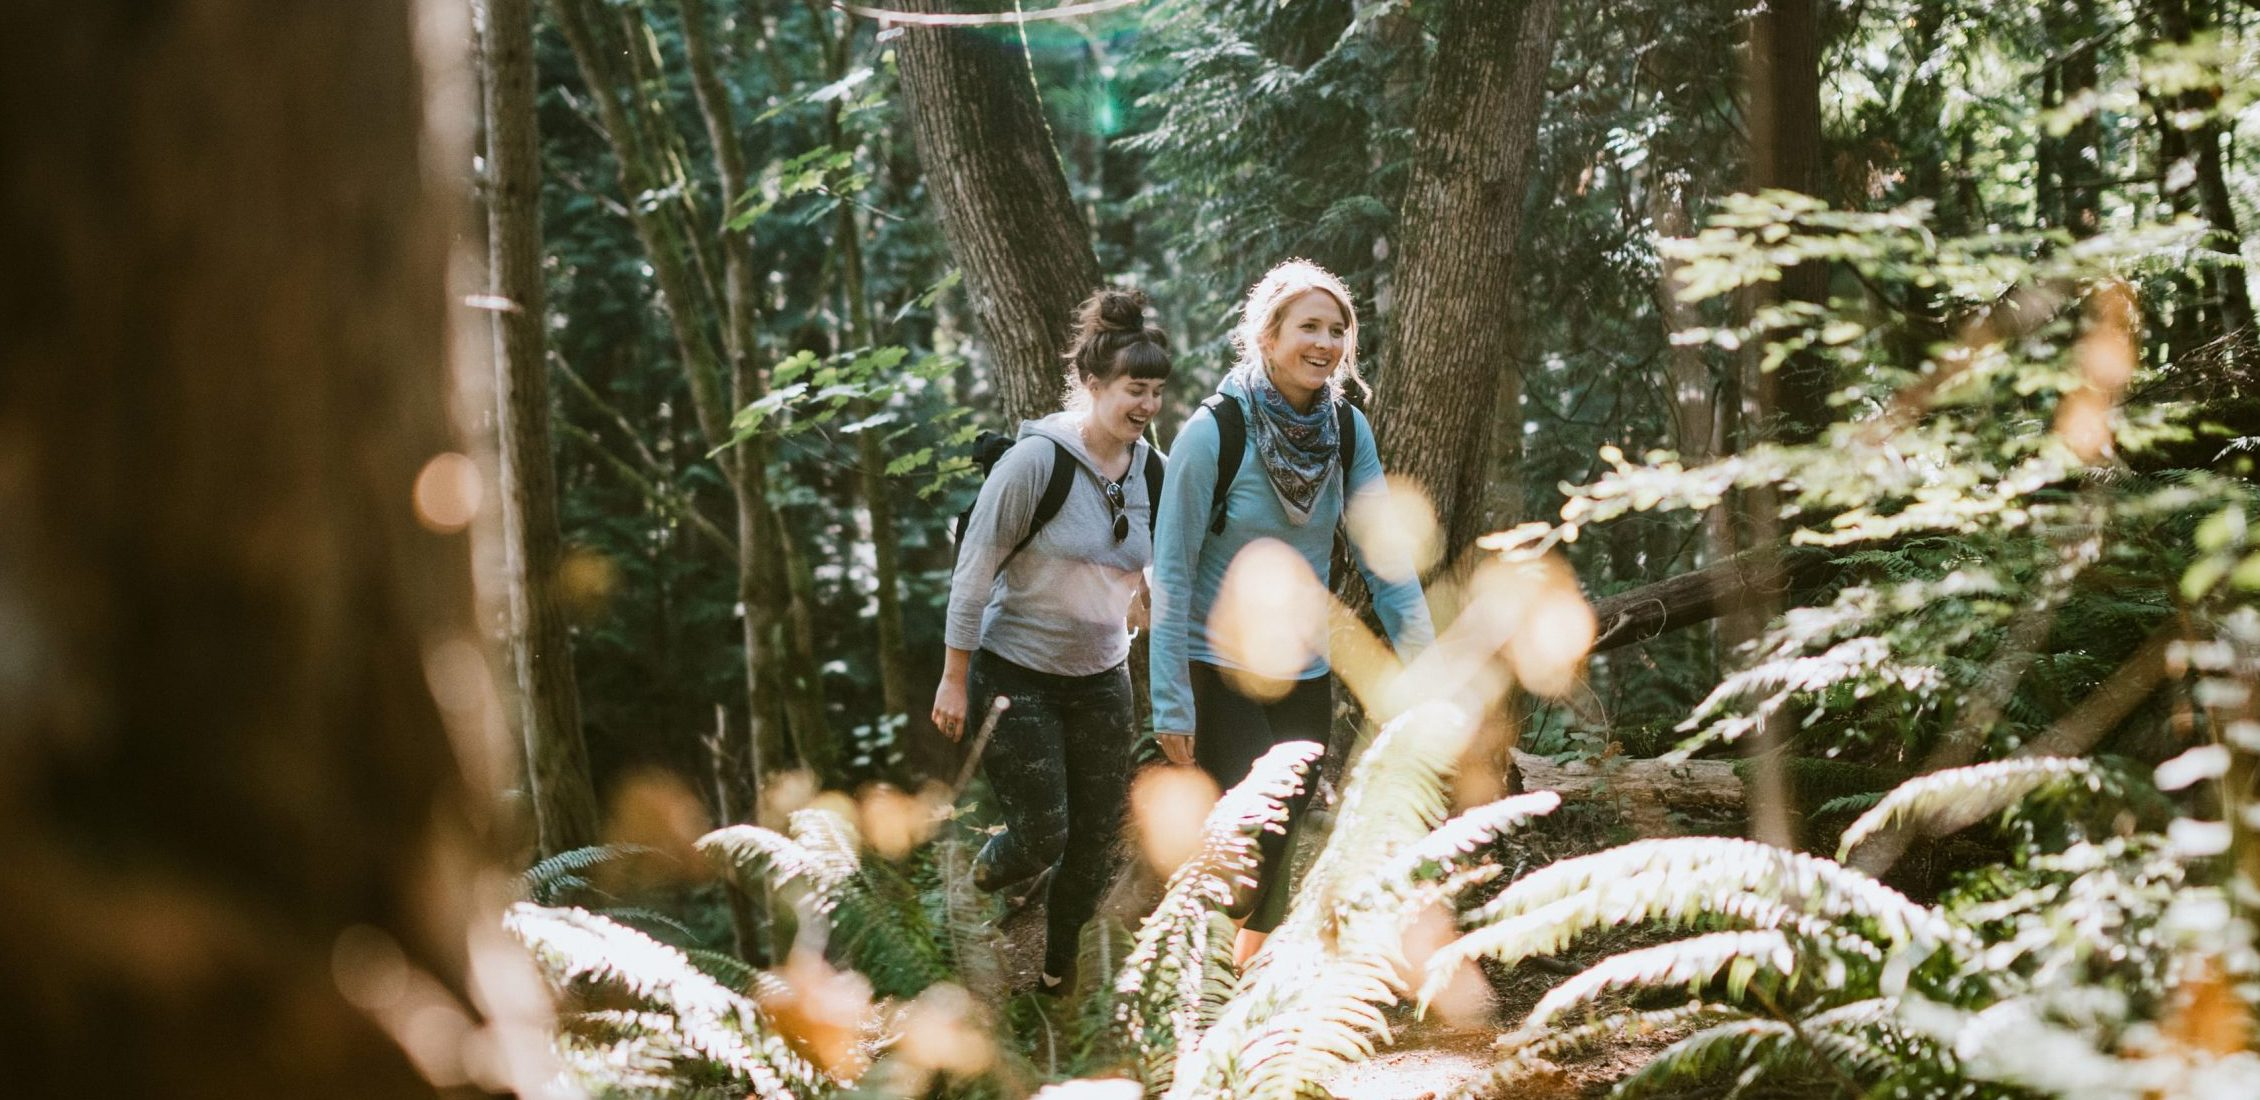 Two friends hiking in the forest